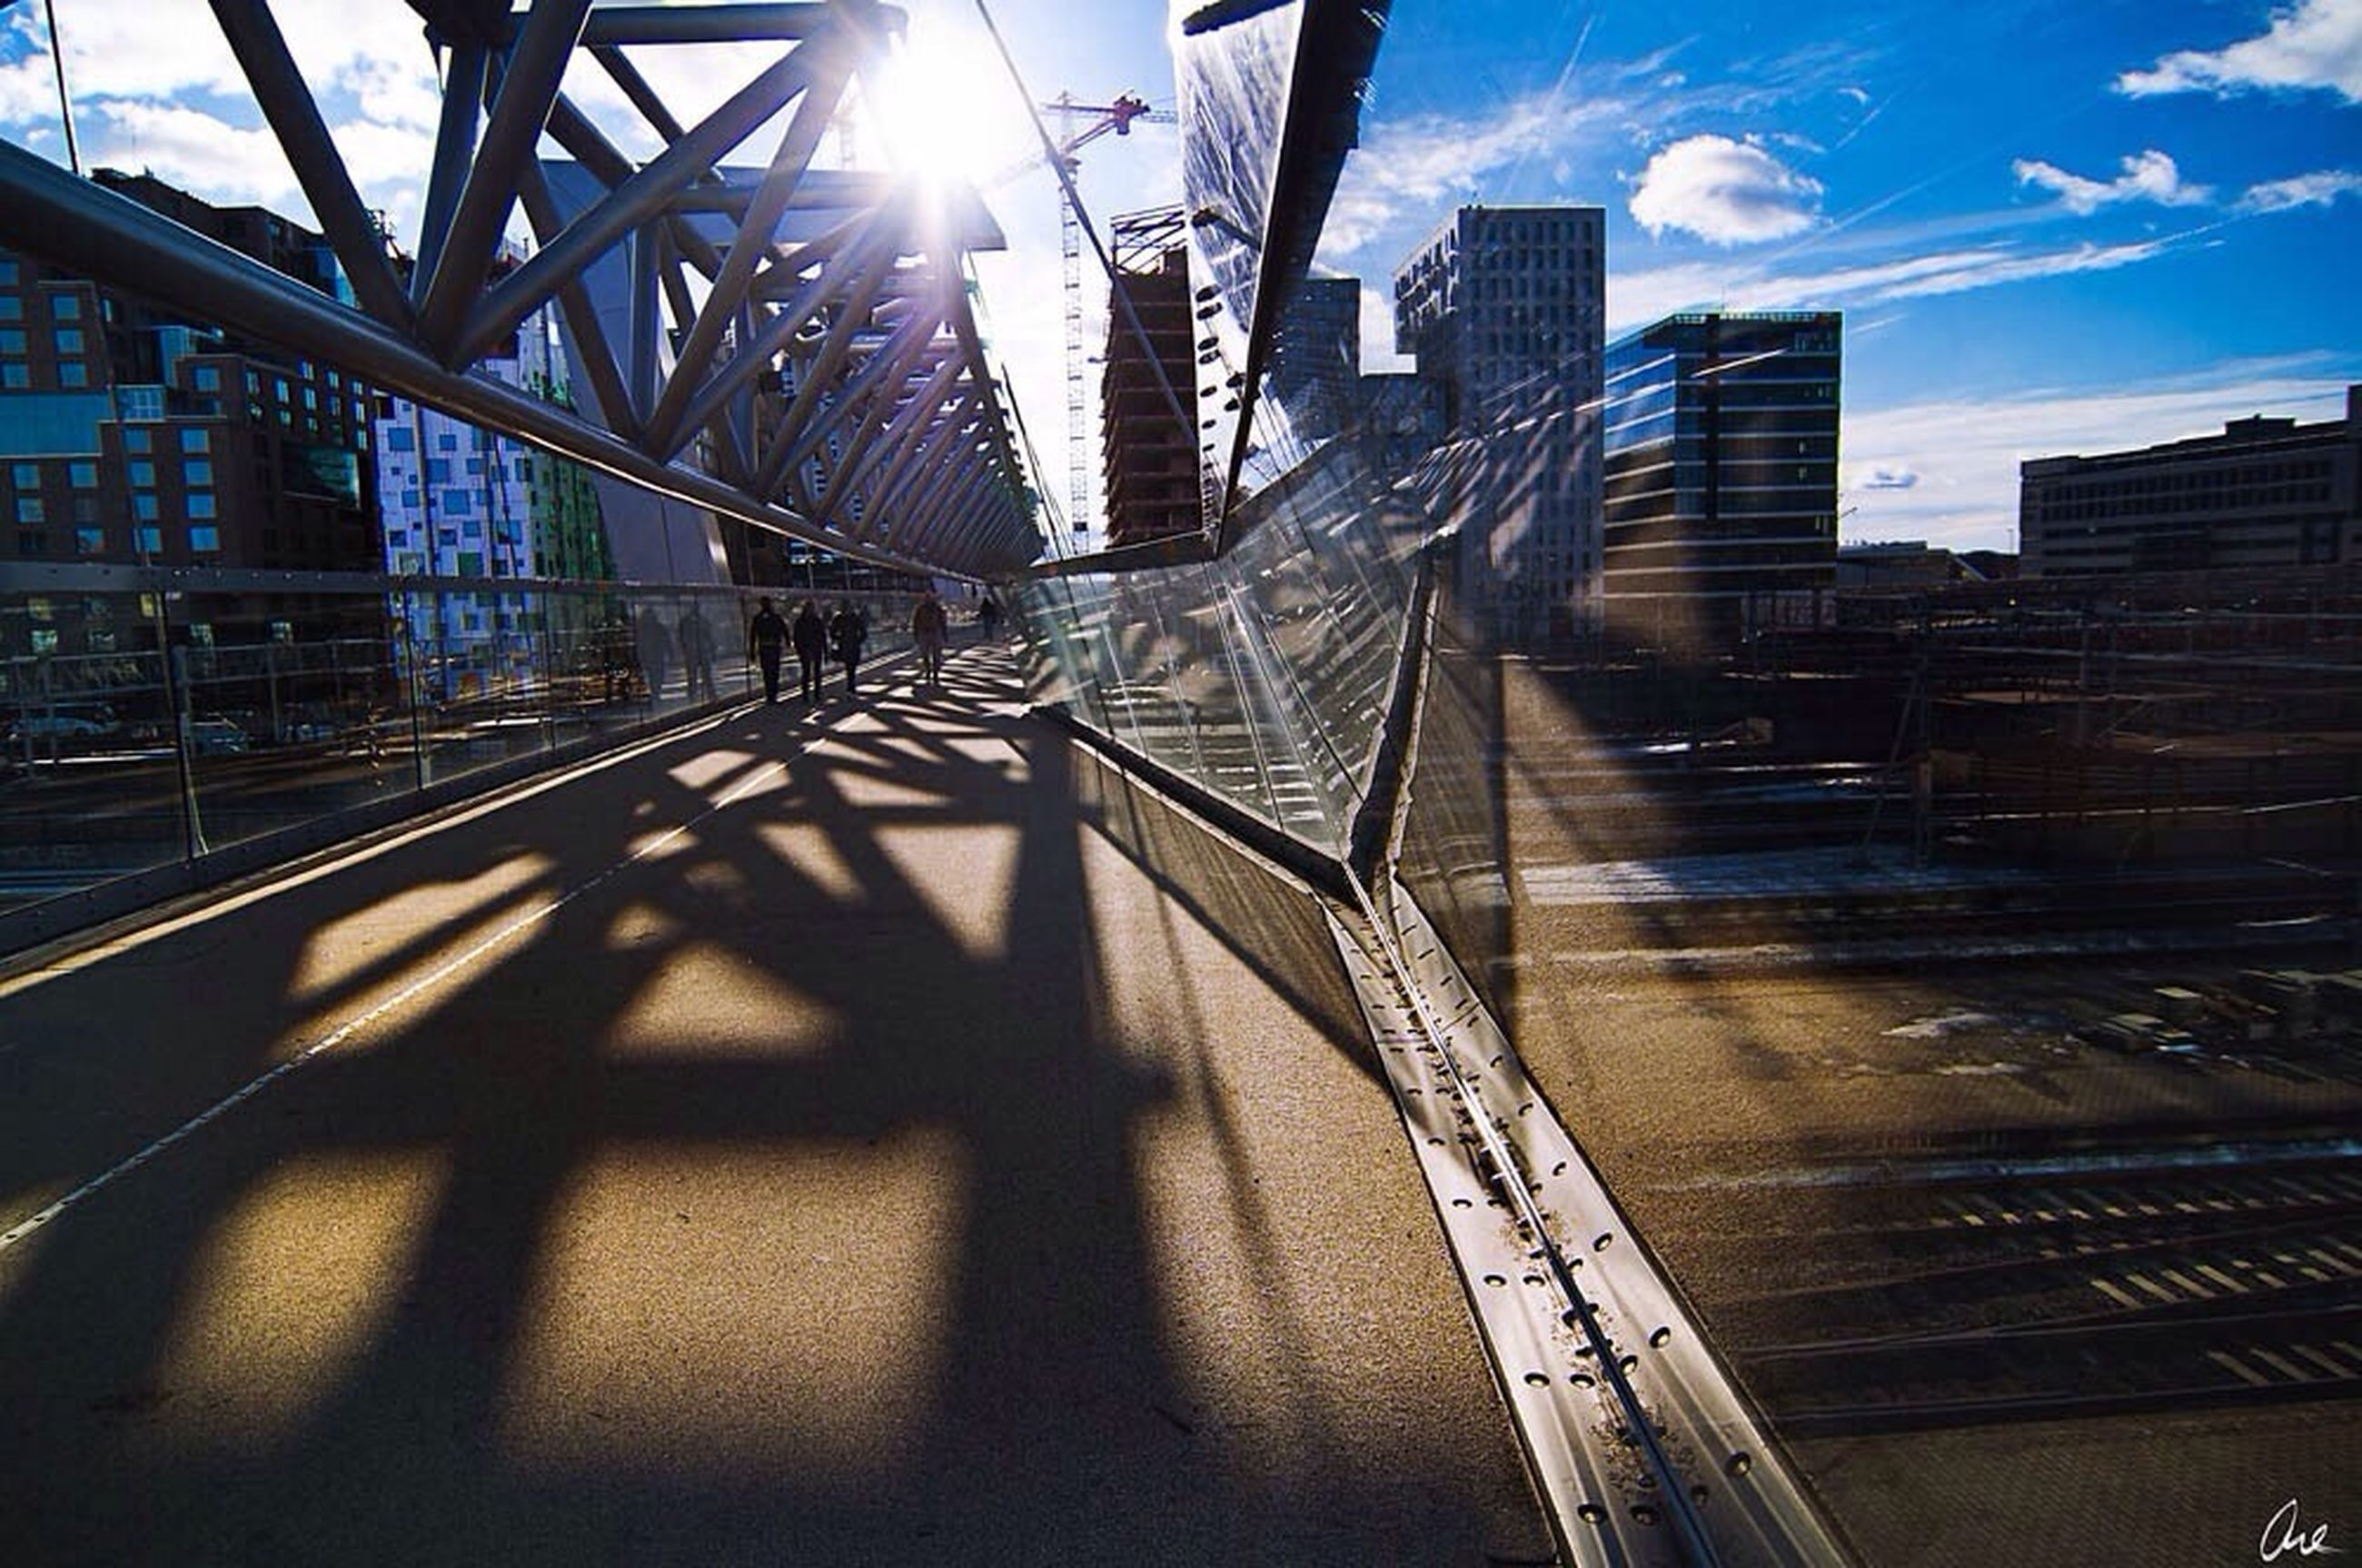 architecture, built structure, building exterior, city, sunlight, sunbeam, sun, lens flare, sunny, sky, transportation, the way forward, building, modern, shadow, office building, skyscraper, diminishing perspective, day, city life